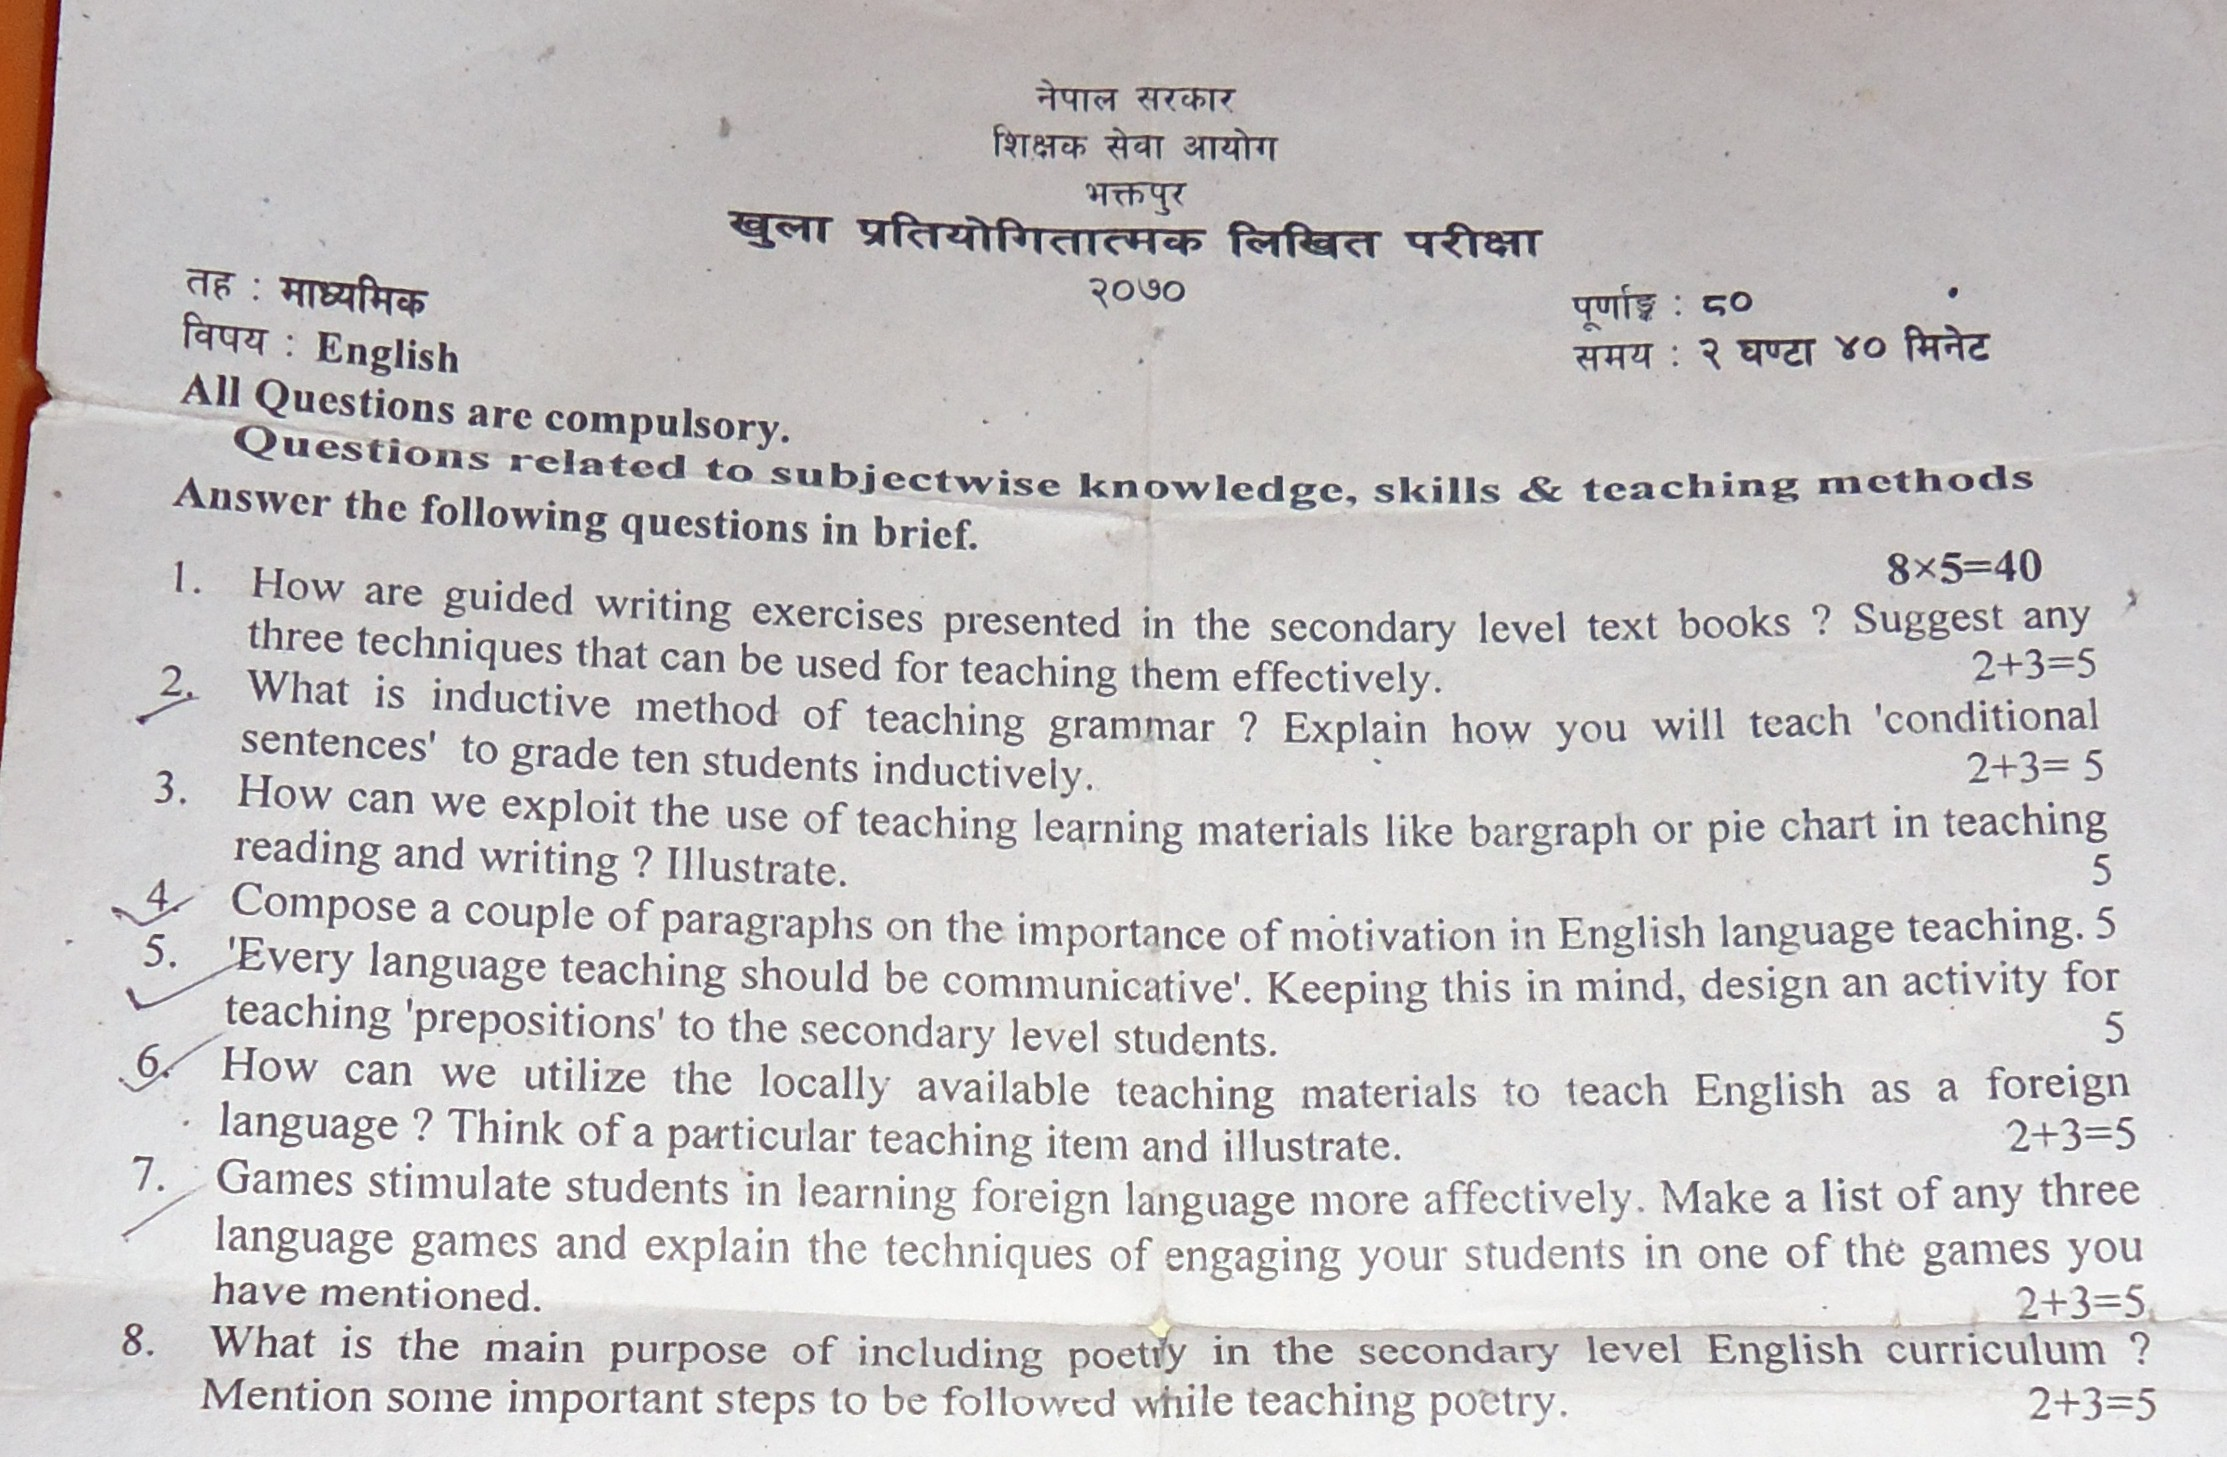 Village essay in sanskrit